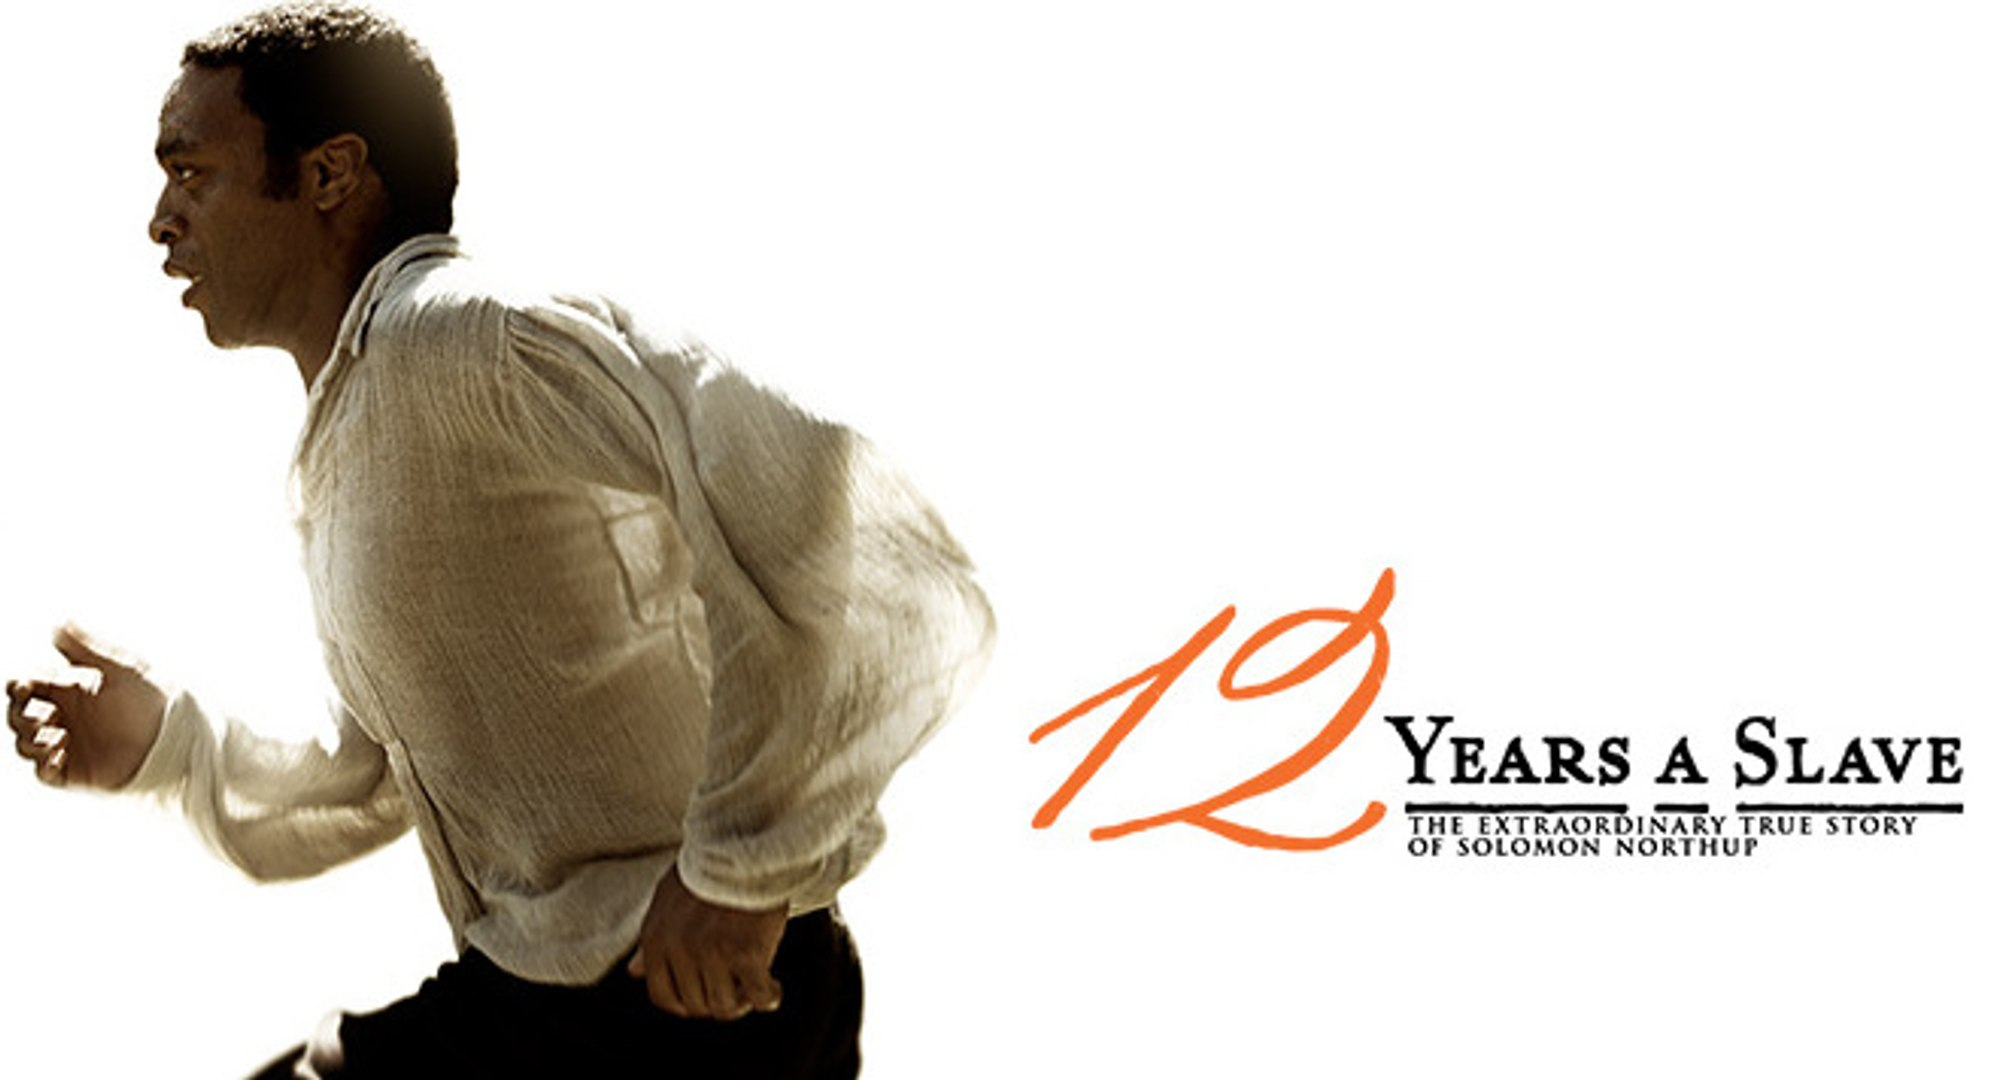 12 years a slave movie full hd 720p free download